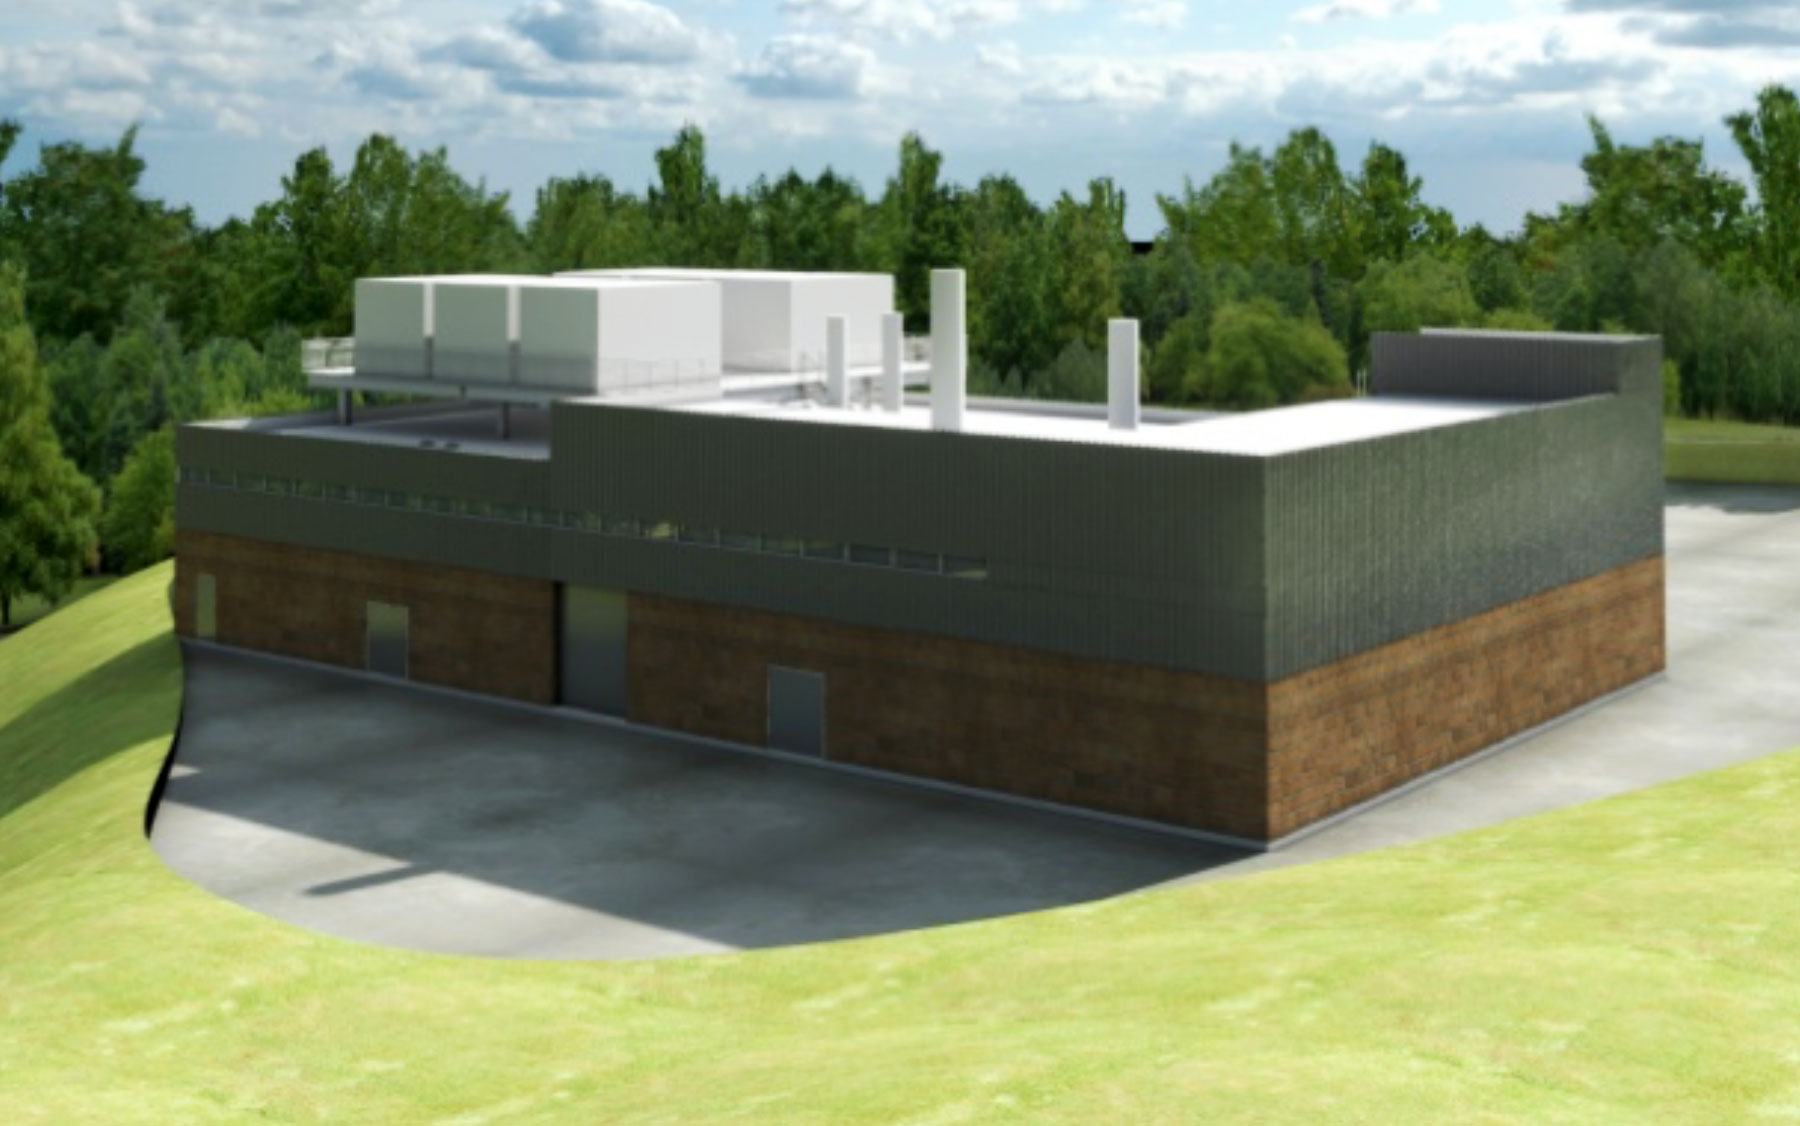 Central Utility Plant Rendering